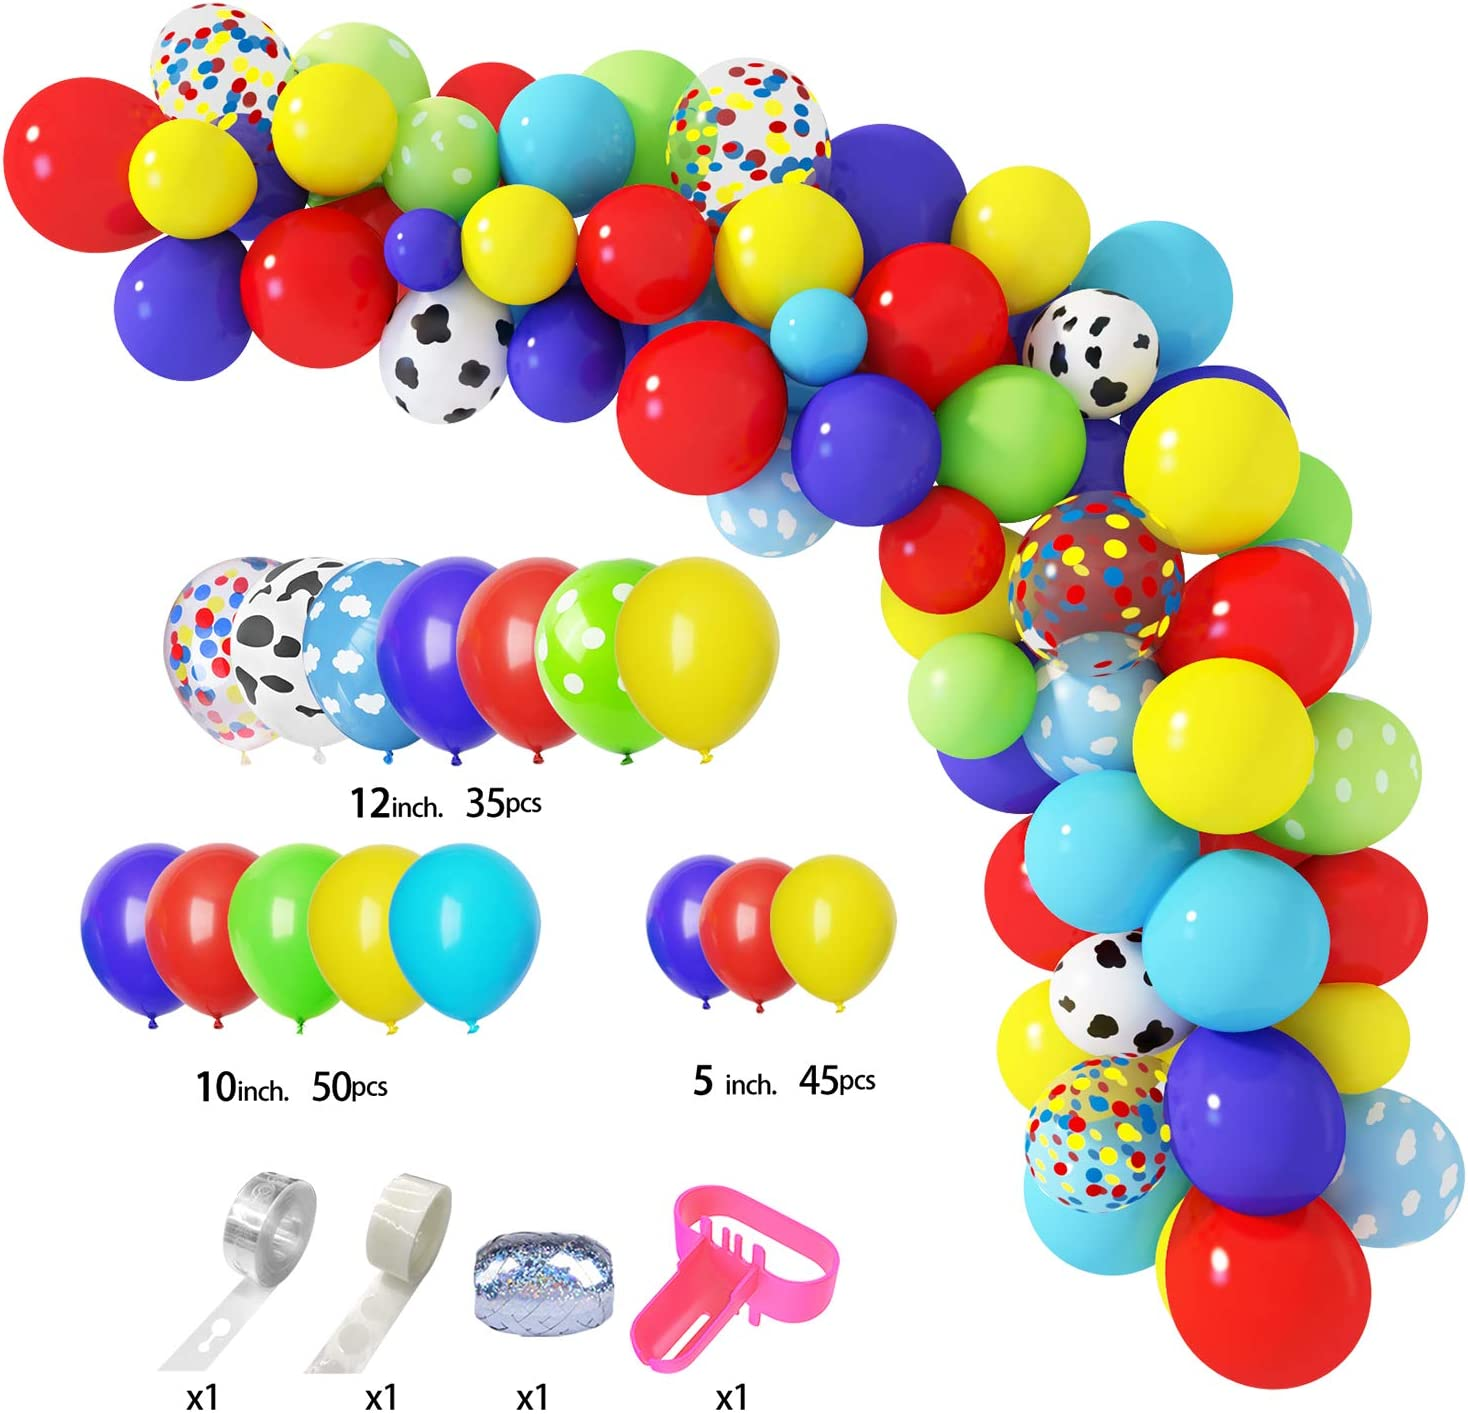 134 Pcs Toy Inspired Story Balloons Arch Garland Kit 12105 Cloud Cow Pattern Yellow Red Blue Green Confetti Latex Balloons for Kids Toy Story Theme Birthday Party Supplies Decorations with 4 Pcs Balloon Tools